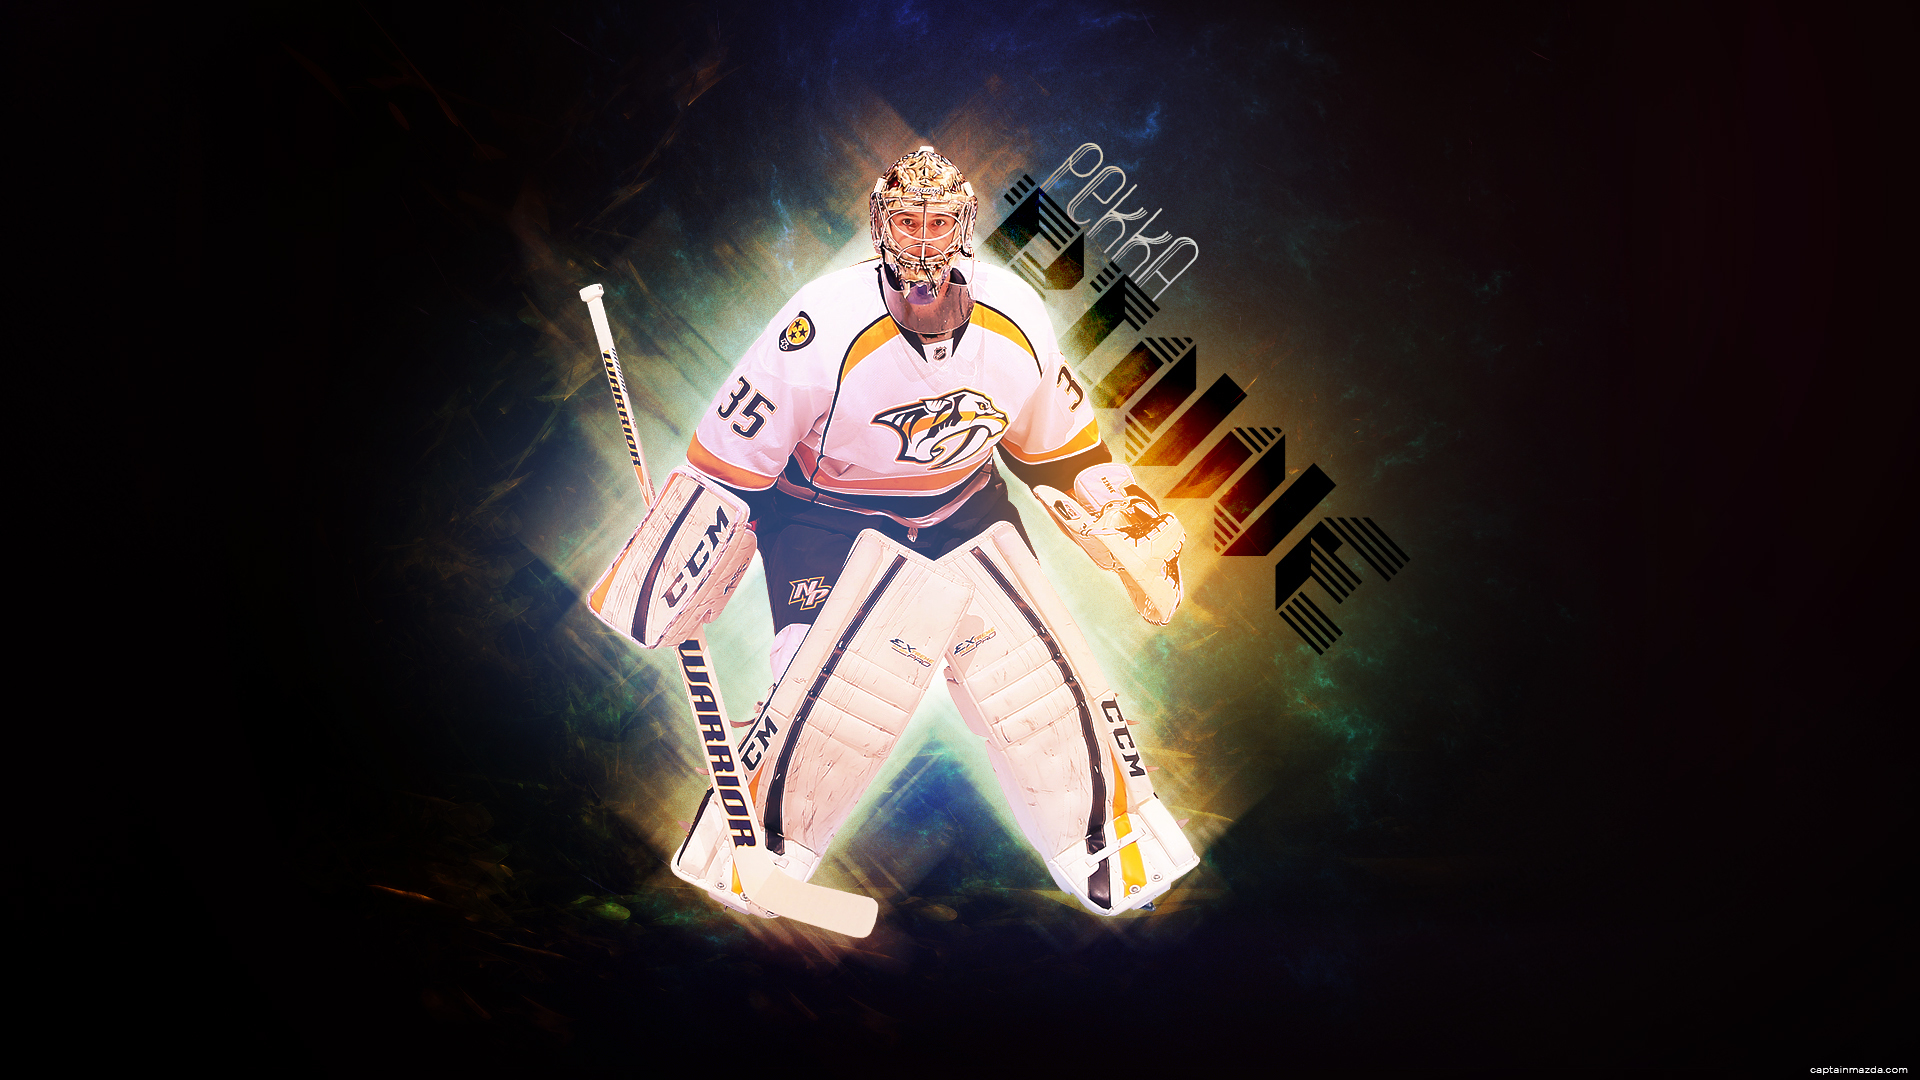 Player of Nashville Pekka Rinne wallpapers and images   wallpapers 1920x1080